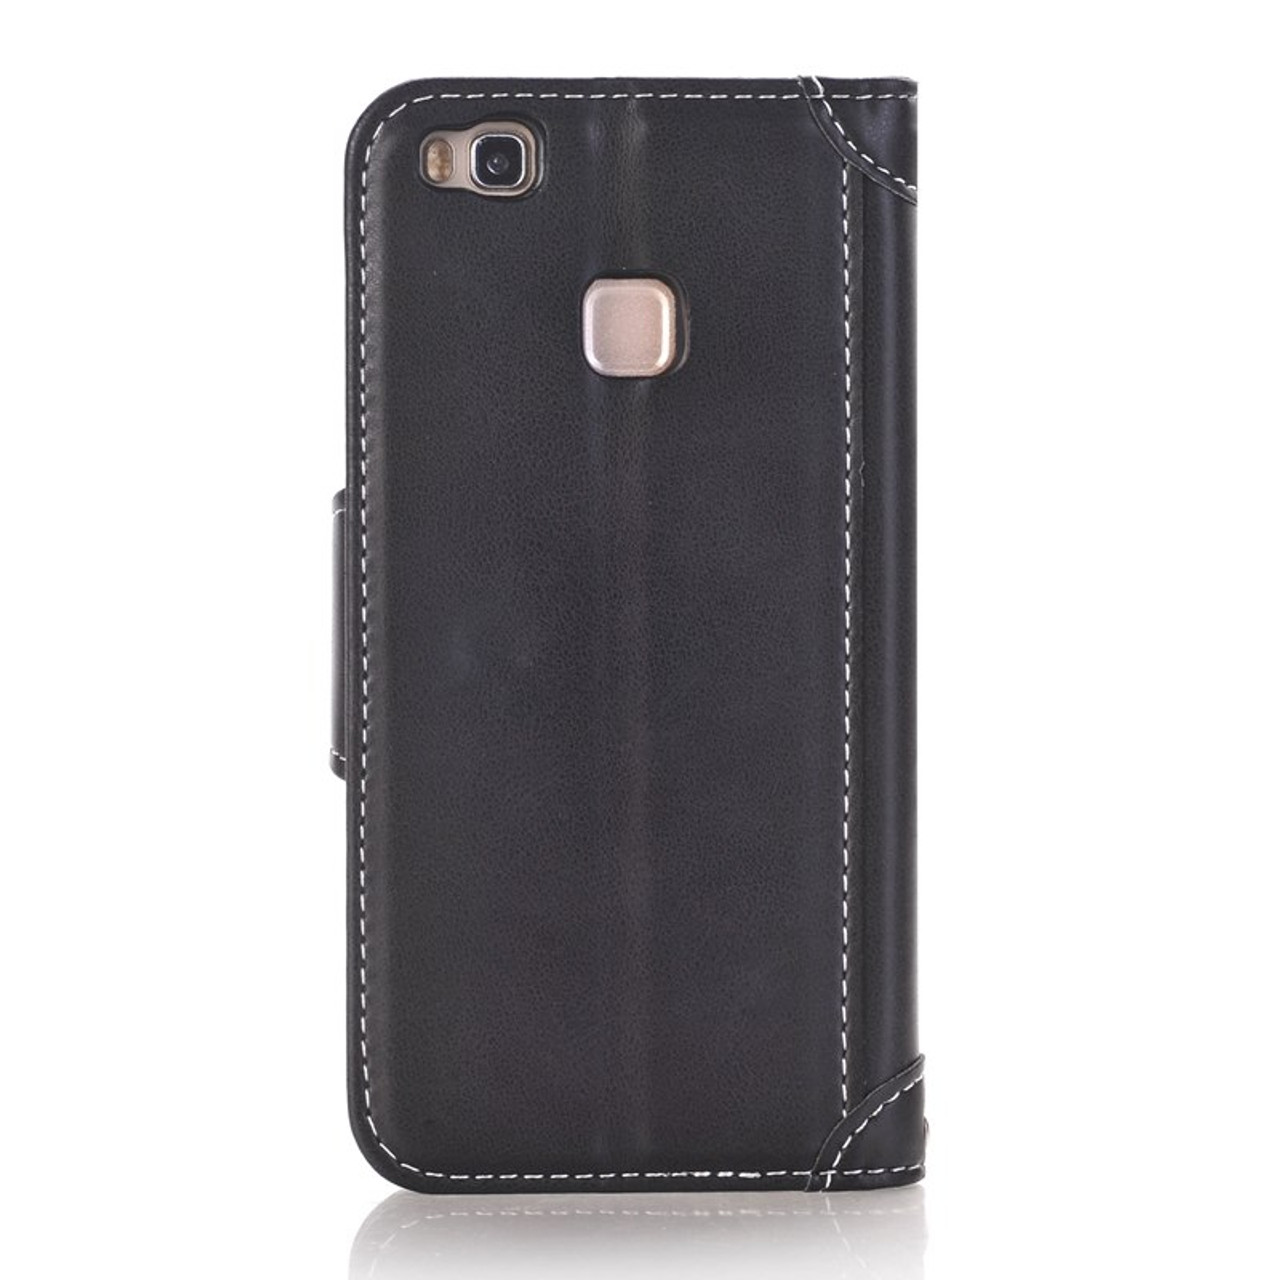 uk availability 4e170 07d41 12 Styles Luxury PU Leather Coque Huawei P9 Lite Case Huawei G9 Flip Wallet  Phone Cover For Huawei P9 Lite / Hawei P9 Mini Case